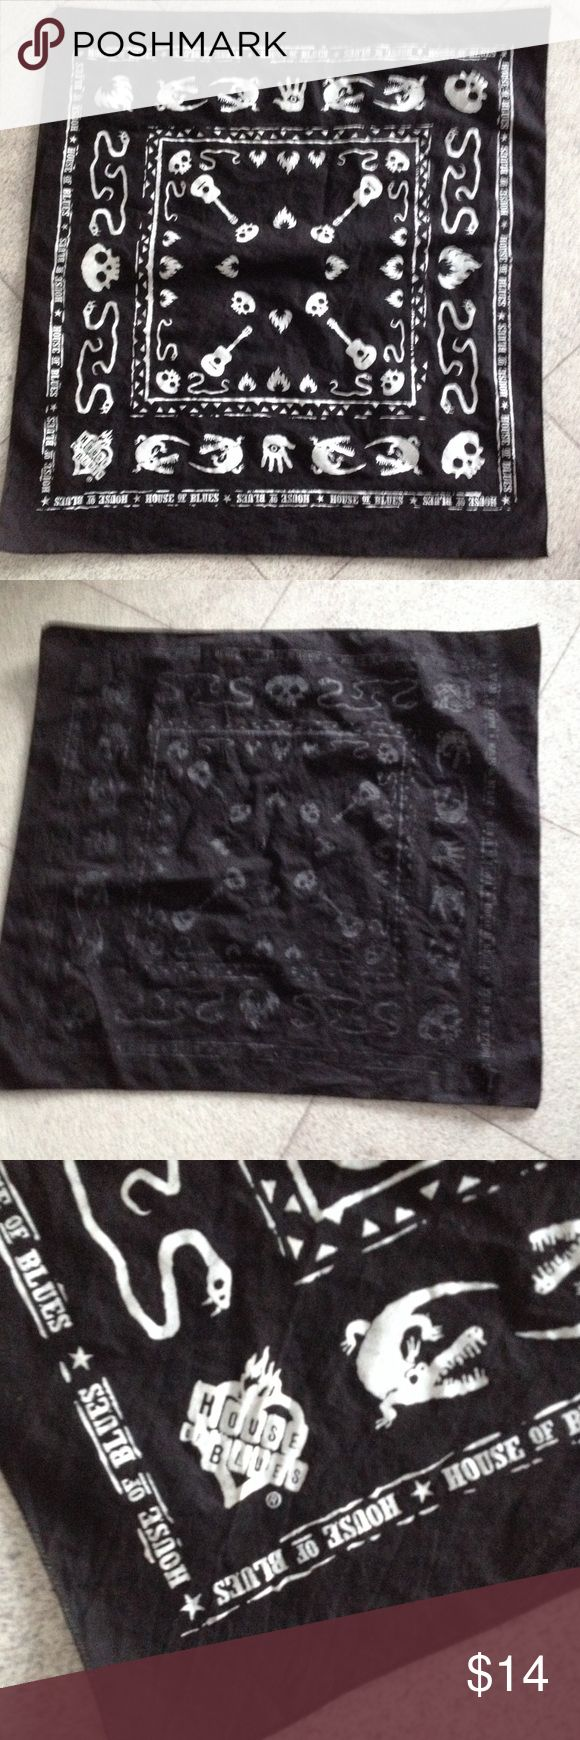 """House of Blues Skull Snake Guitars Bandana + 1 Black & white bandana approx. 20"""" x 22"""" gently used condition. Fabric content/manufacture tag has been removed. 2nd scarf is approx. 21 1/2 x 21"""" victory motorcycle emblem. Fabric content unknown. Accessories Scarves & Wraps"""